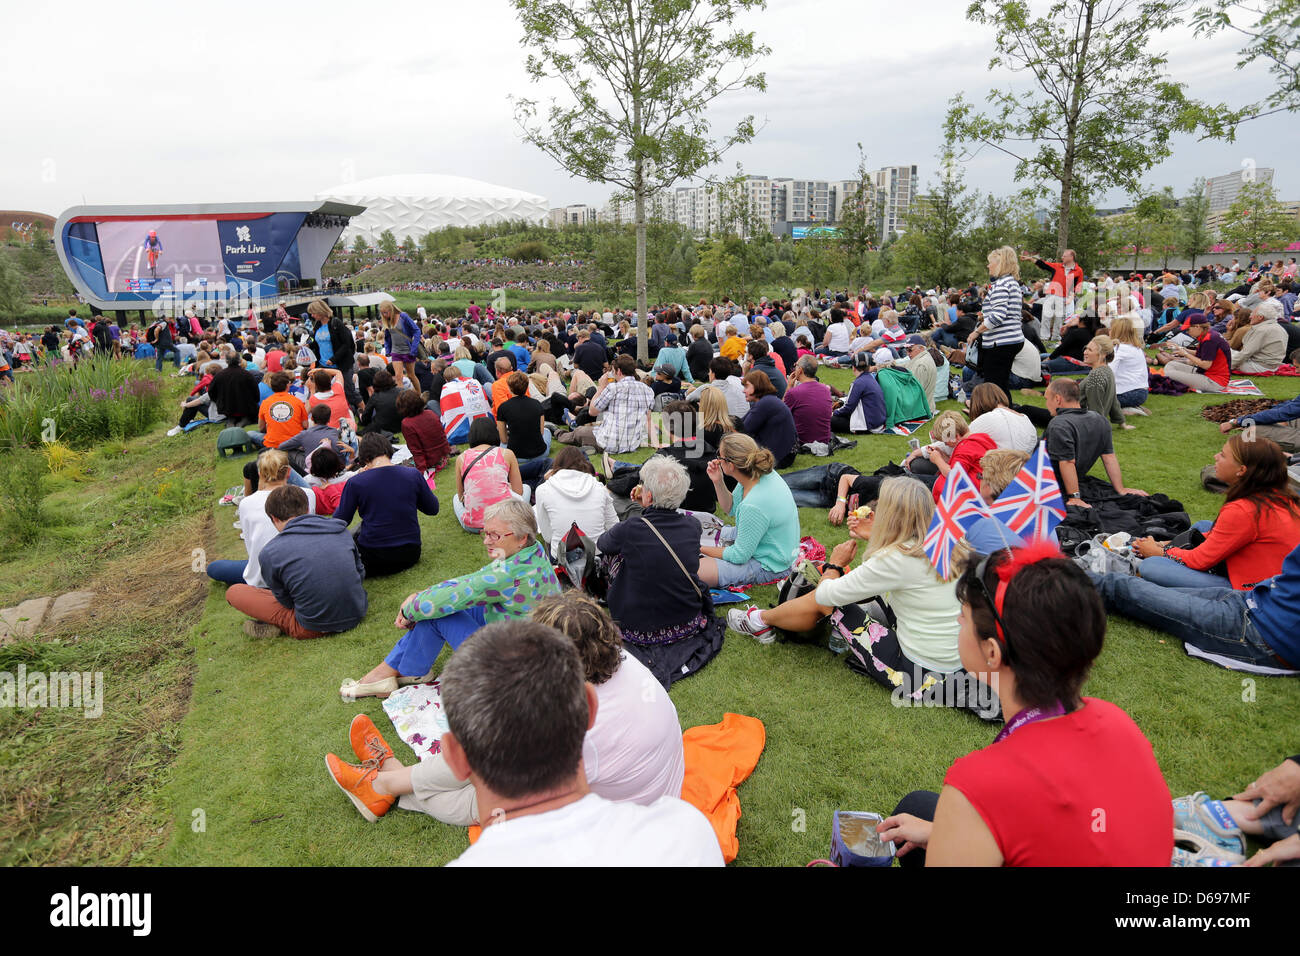 People Sit In The Olympic Park And Watch Cycling Event On A Huge TV Screen At London 2012 Games Great Britain 01 August